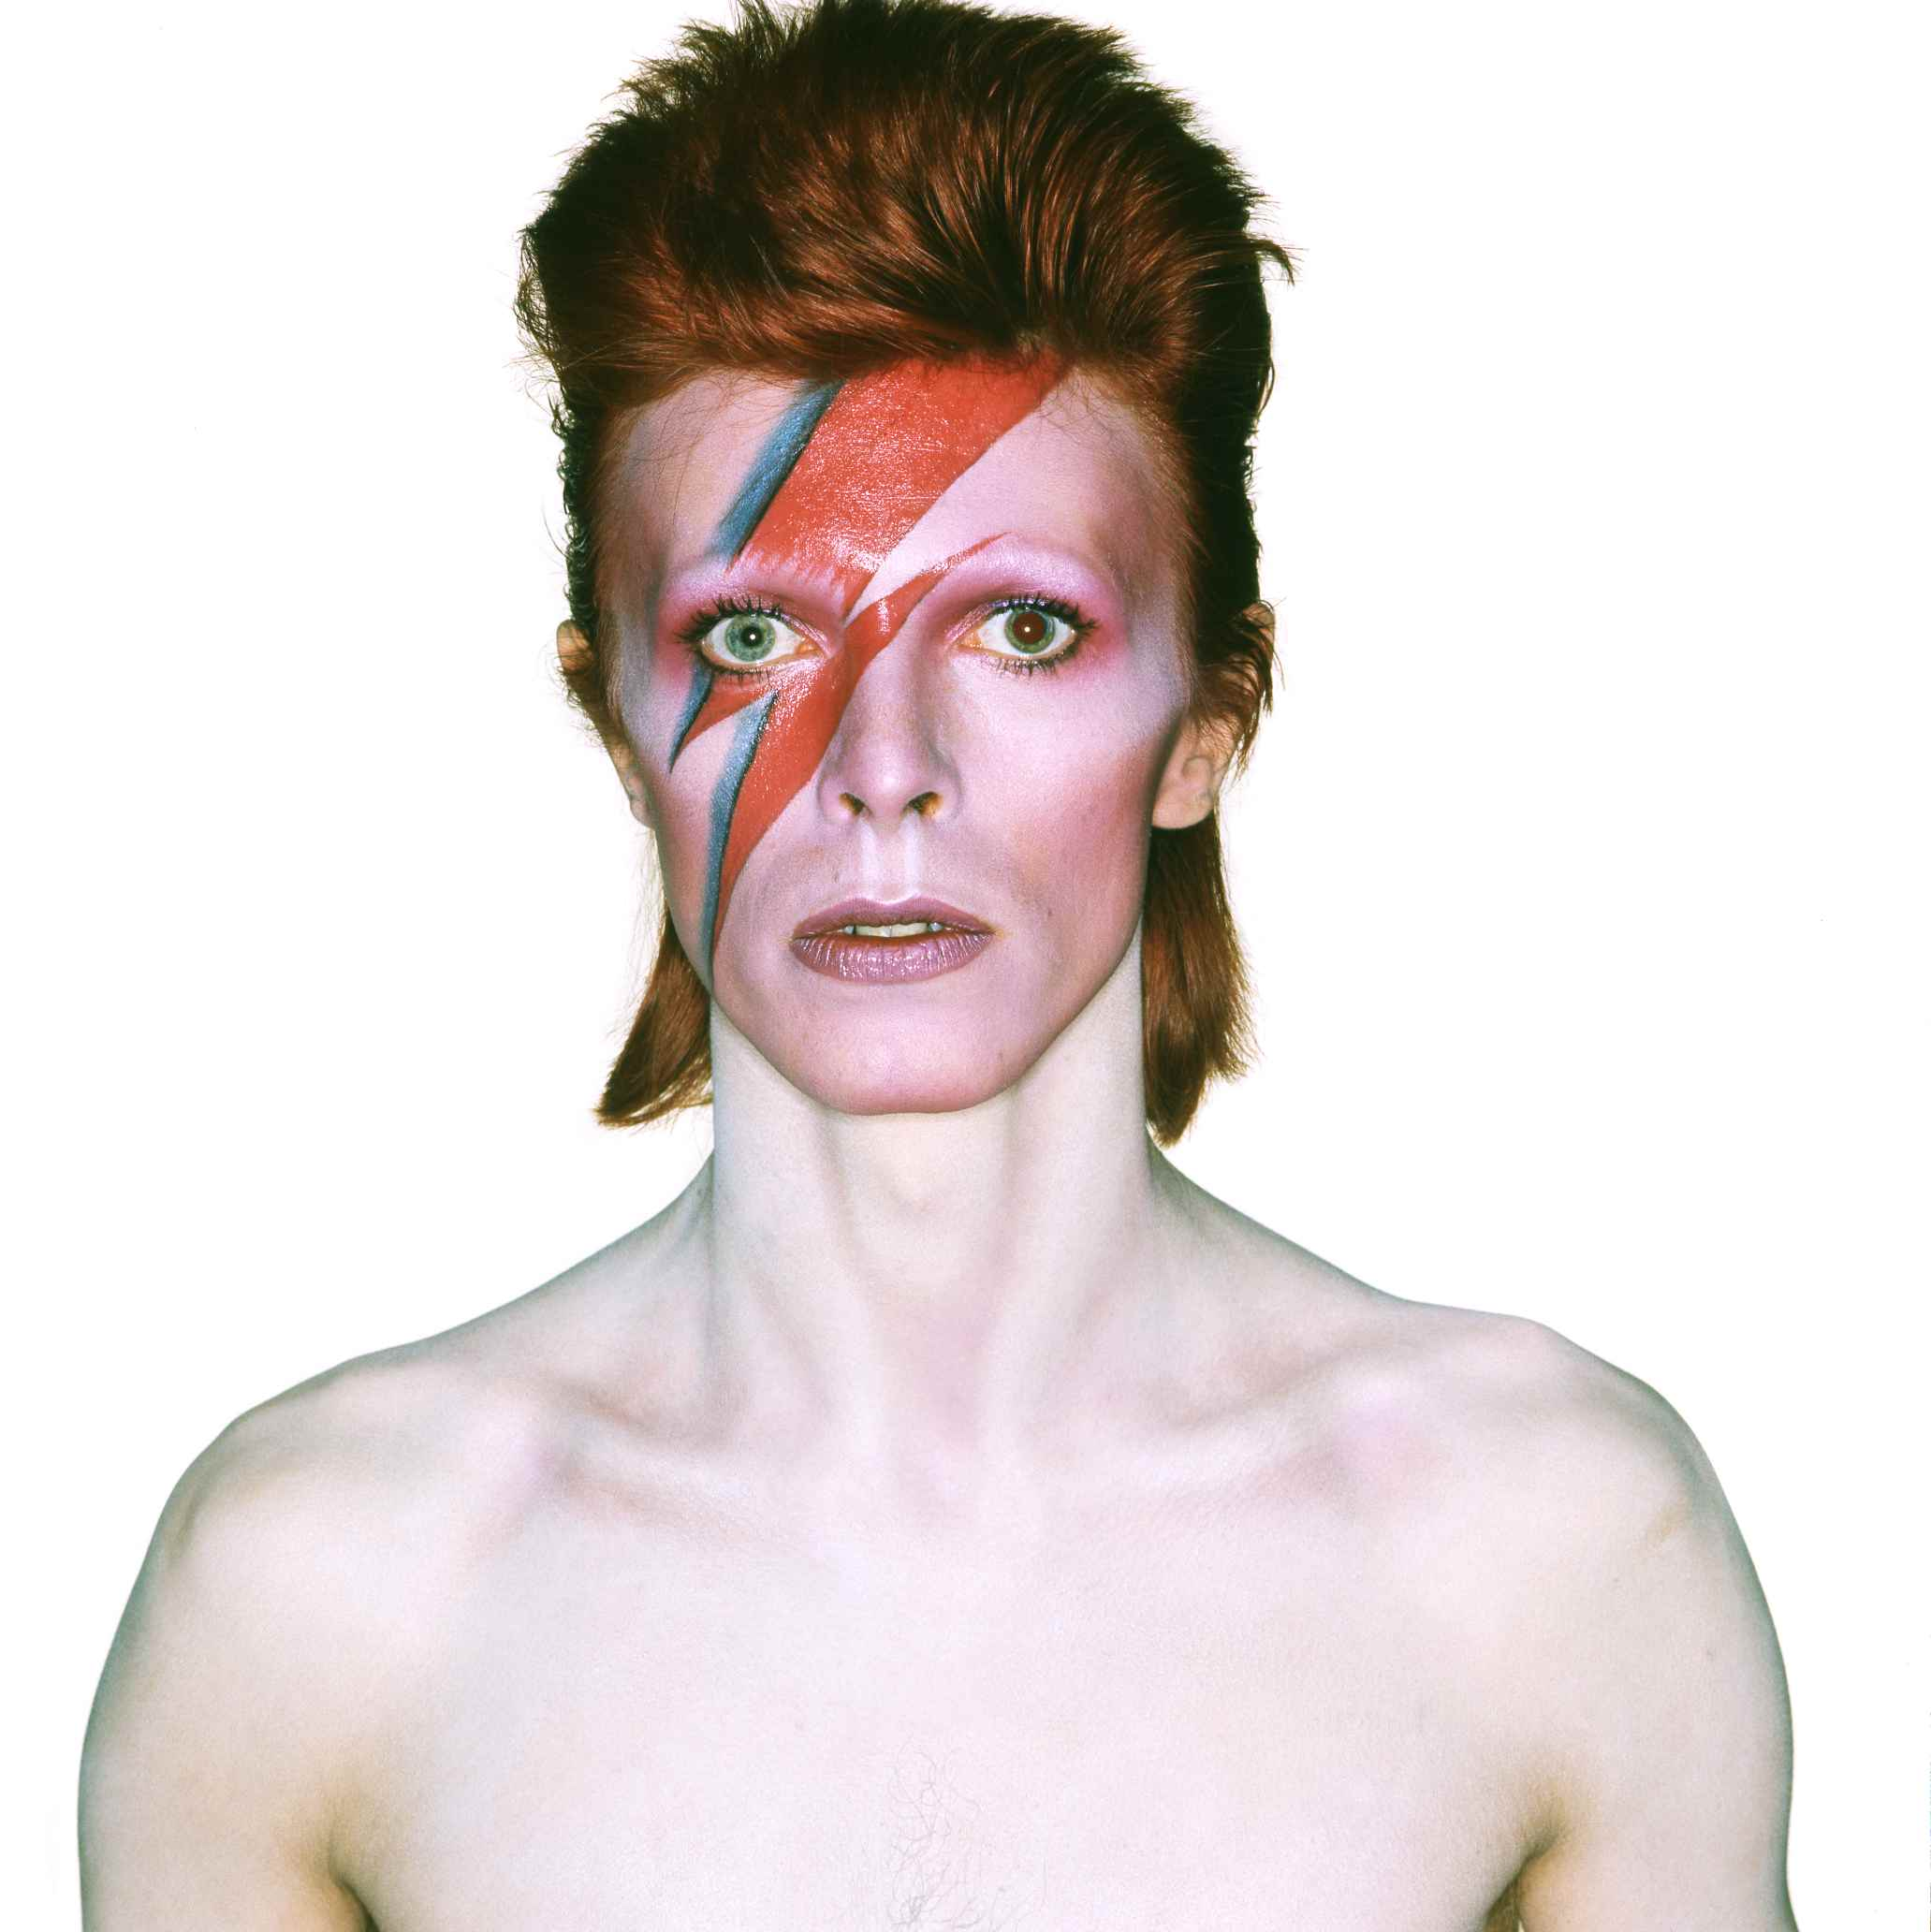 Album cover shoot for Aladdin Sane, 1973 | Design by Brian Duffy and Celia Philo, make up by Pierre La Roche | Photograph by Brian Duffy | © Duffy Archive